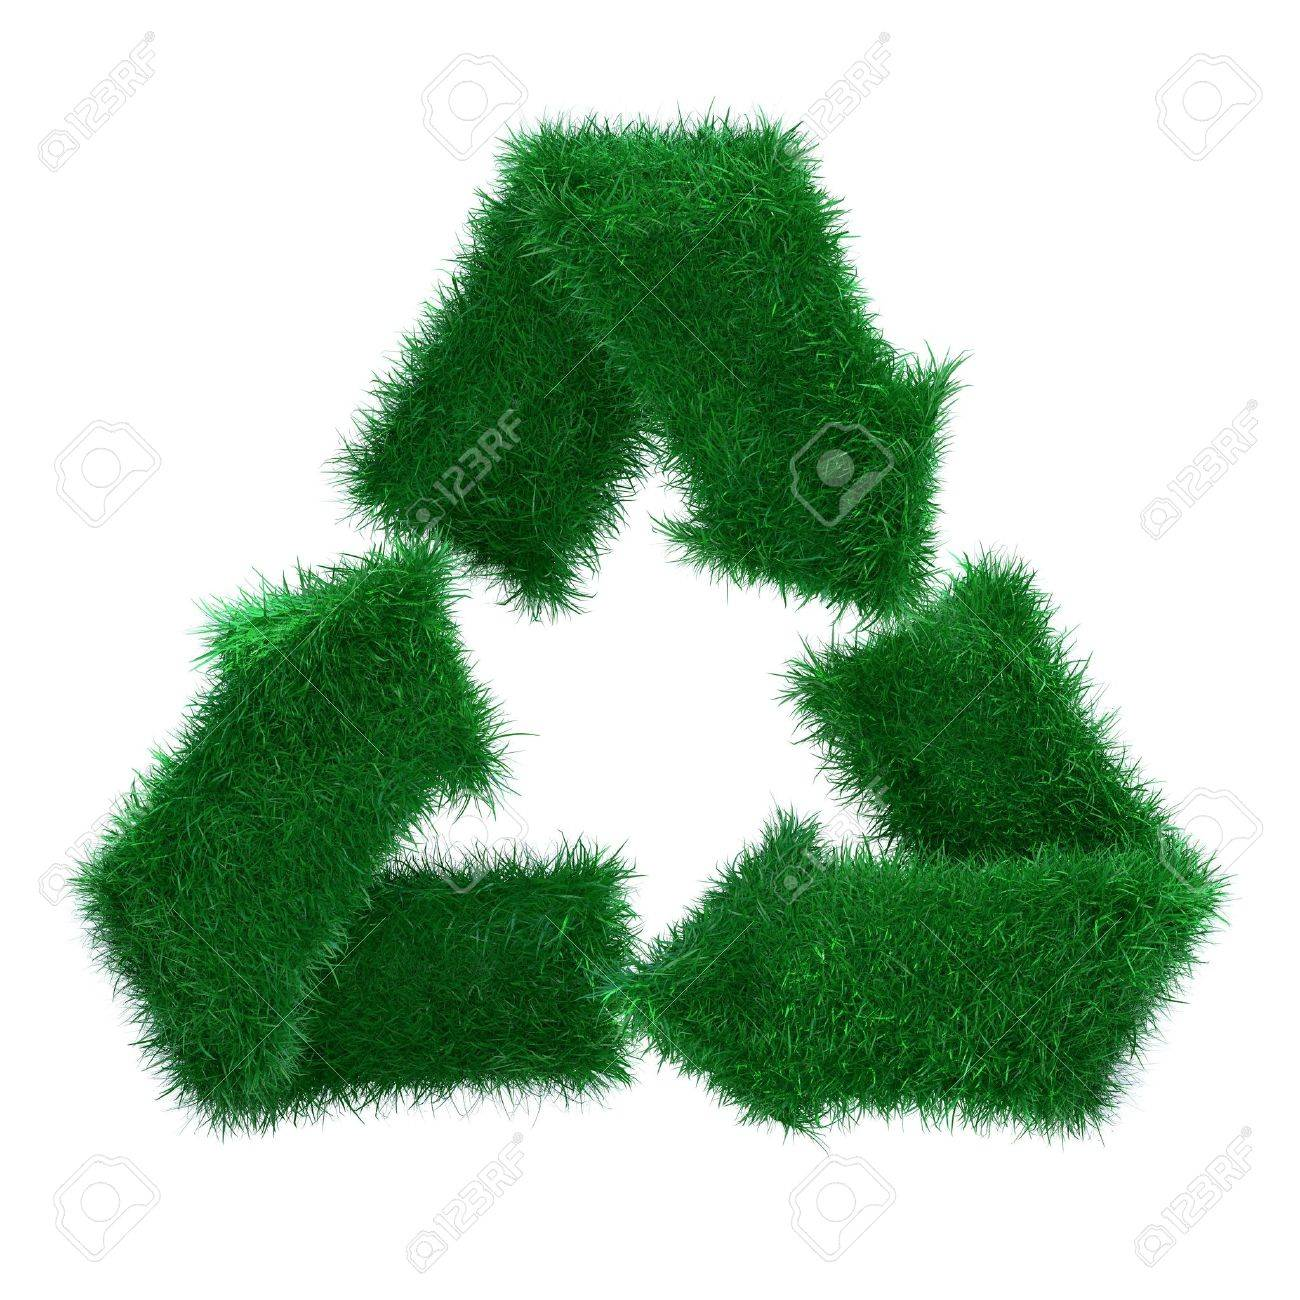 3d grass recycle arrows isolated on white background Stock Photo - 7553898